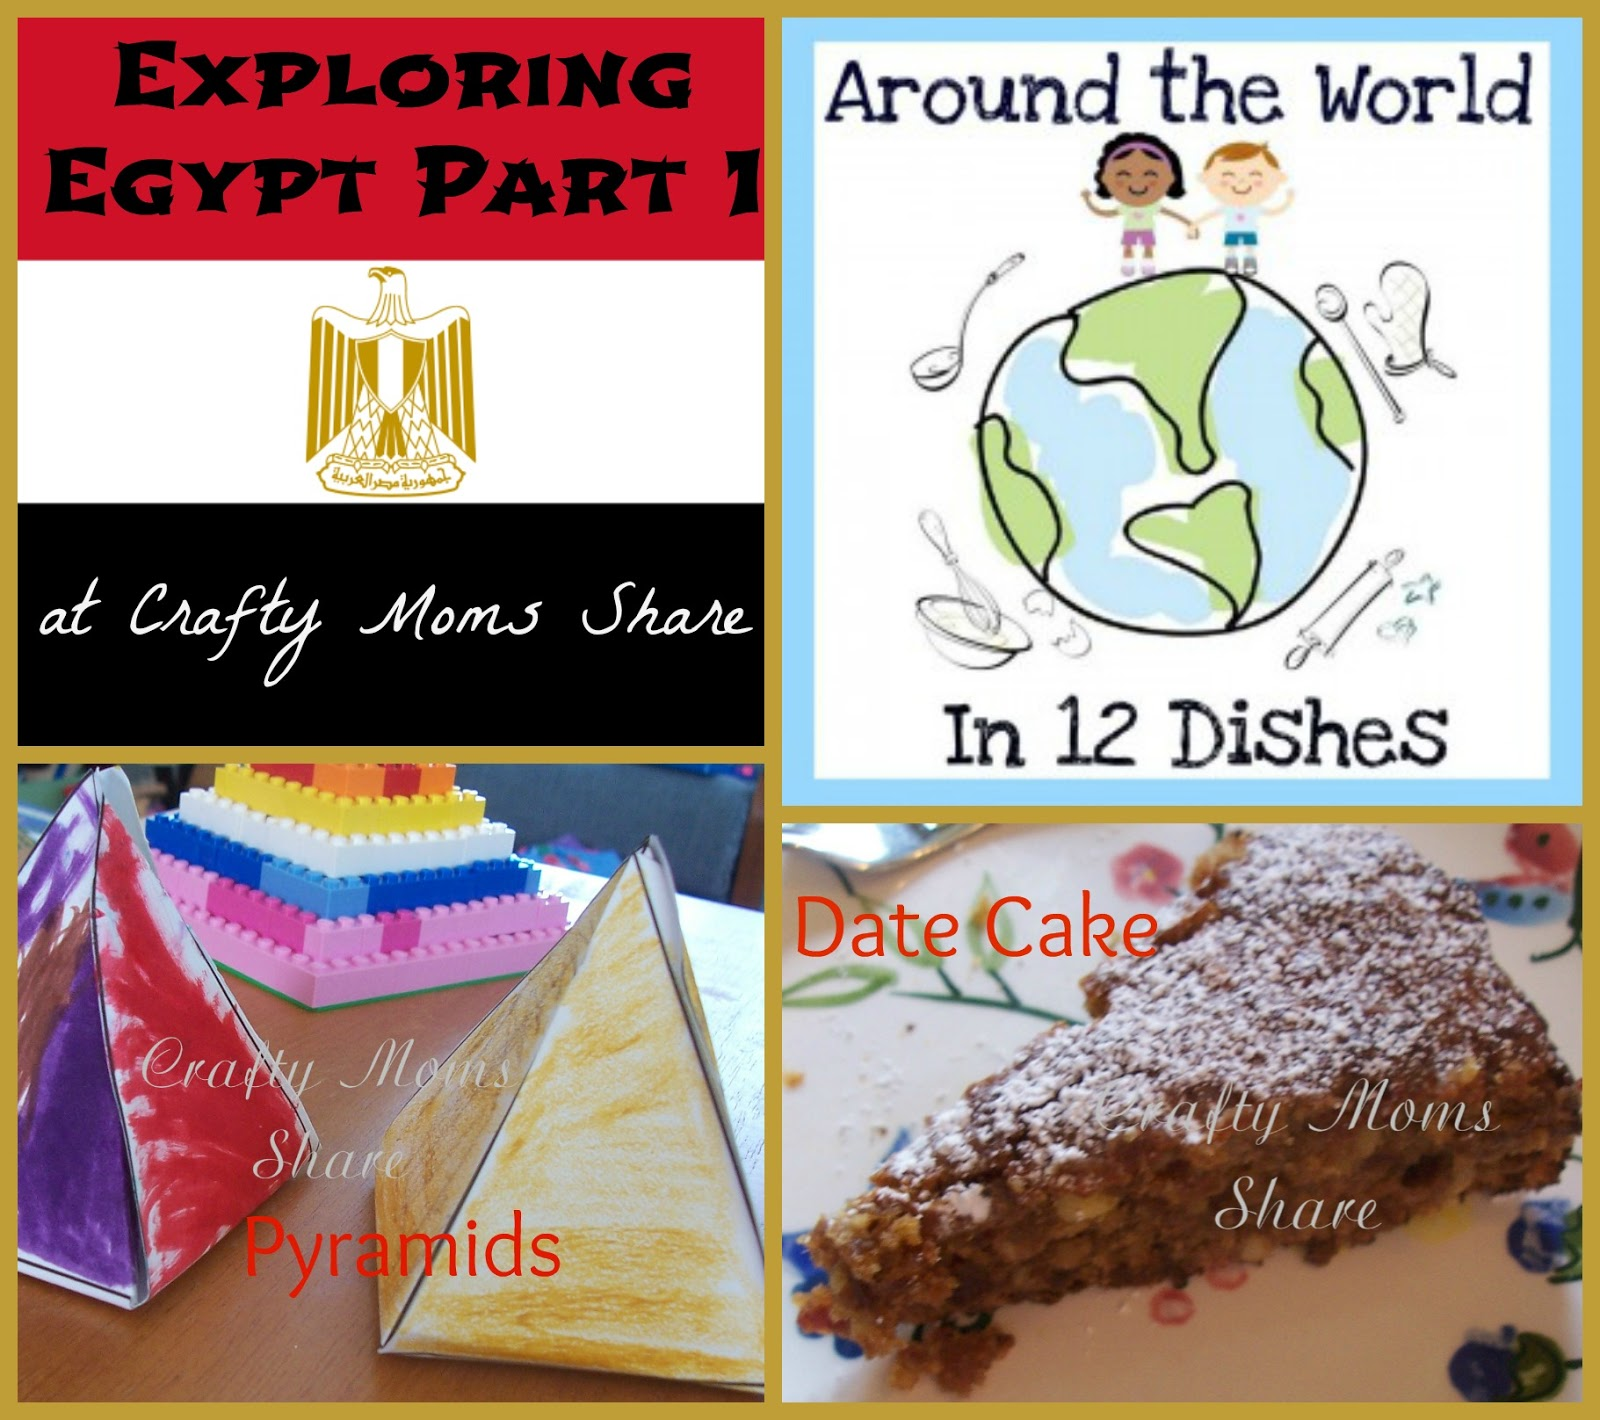 Crafty moms share around the world in 12 dishes egypt part 1 around the world in 12 dishes egypt part 1 date cake forumfinder Images